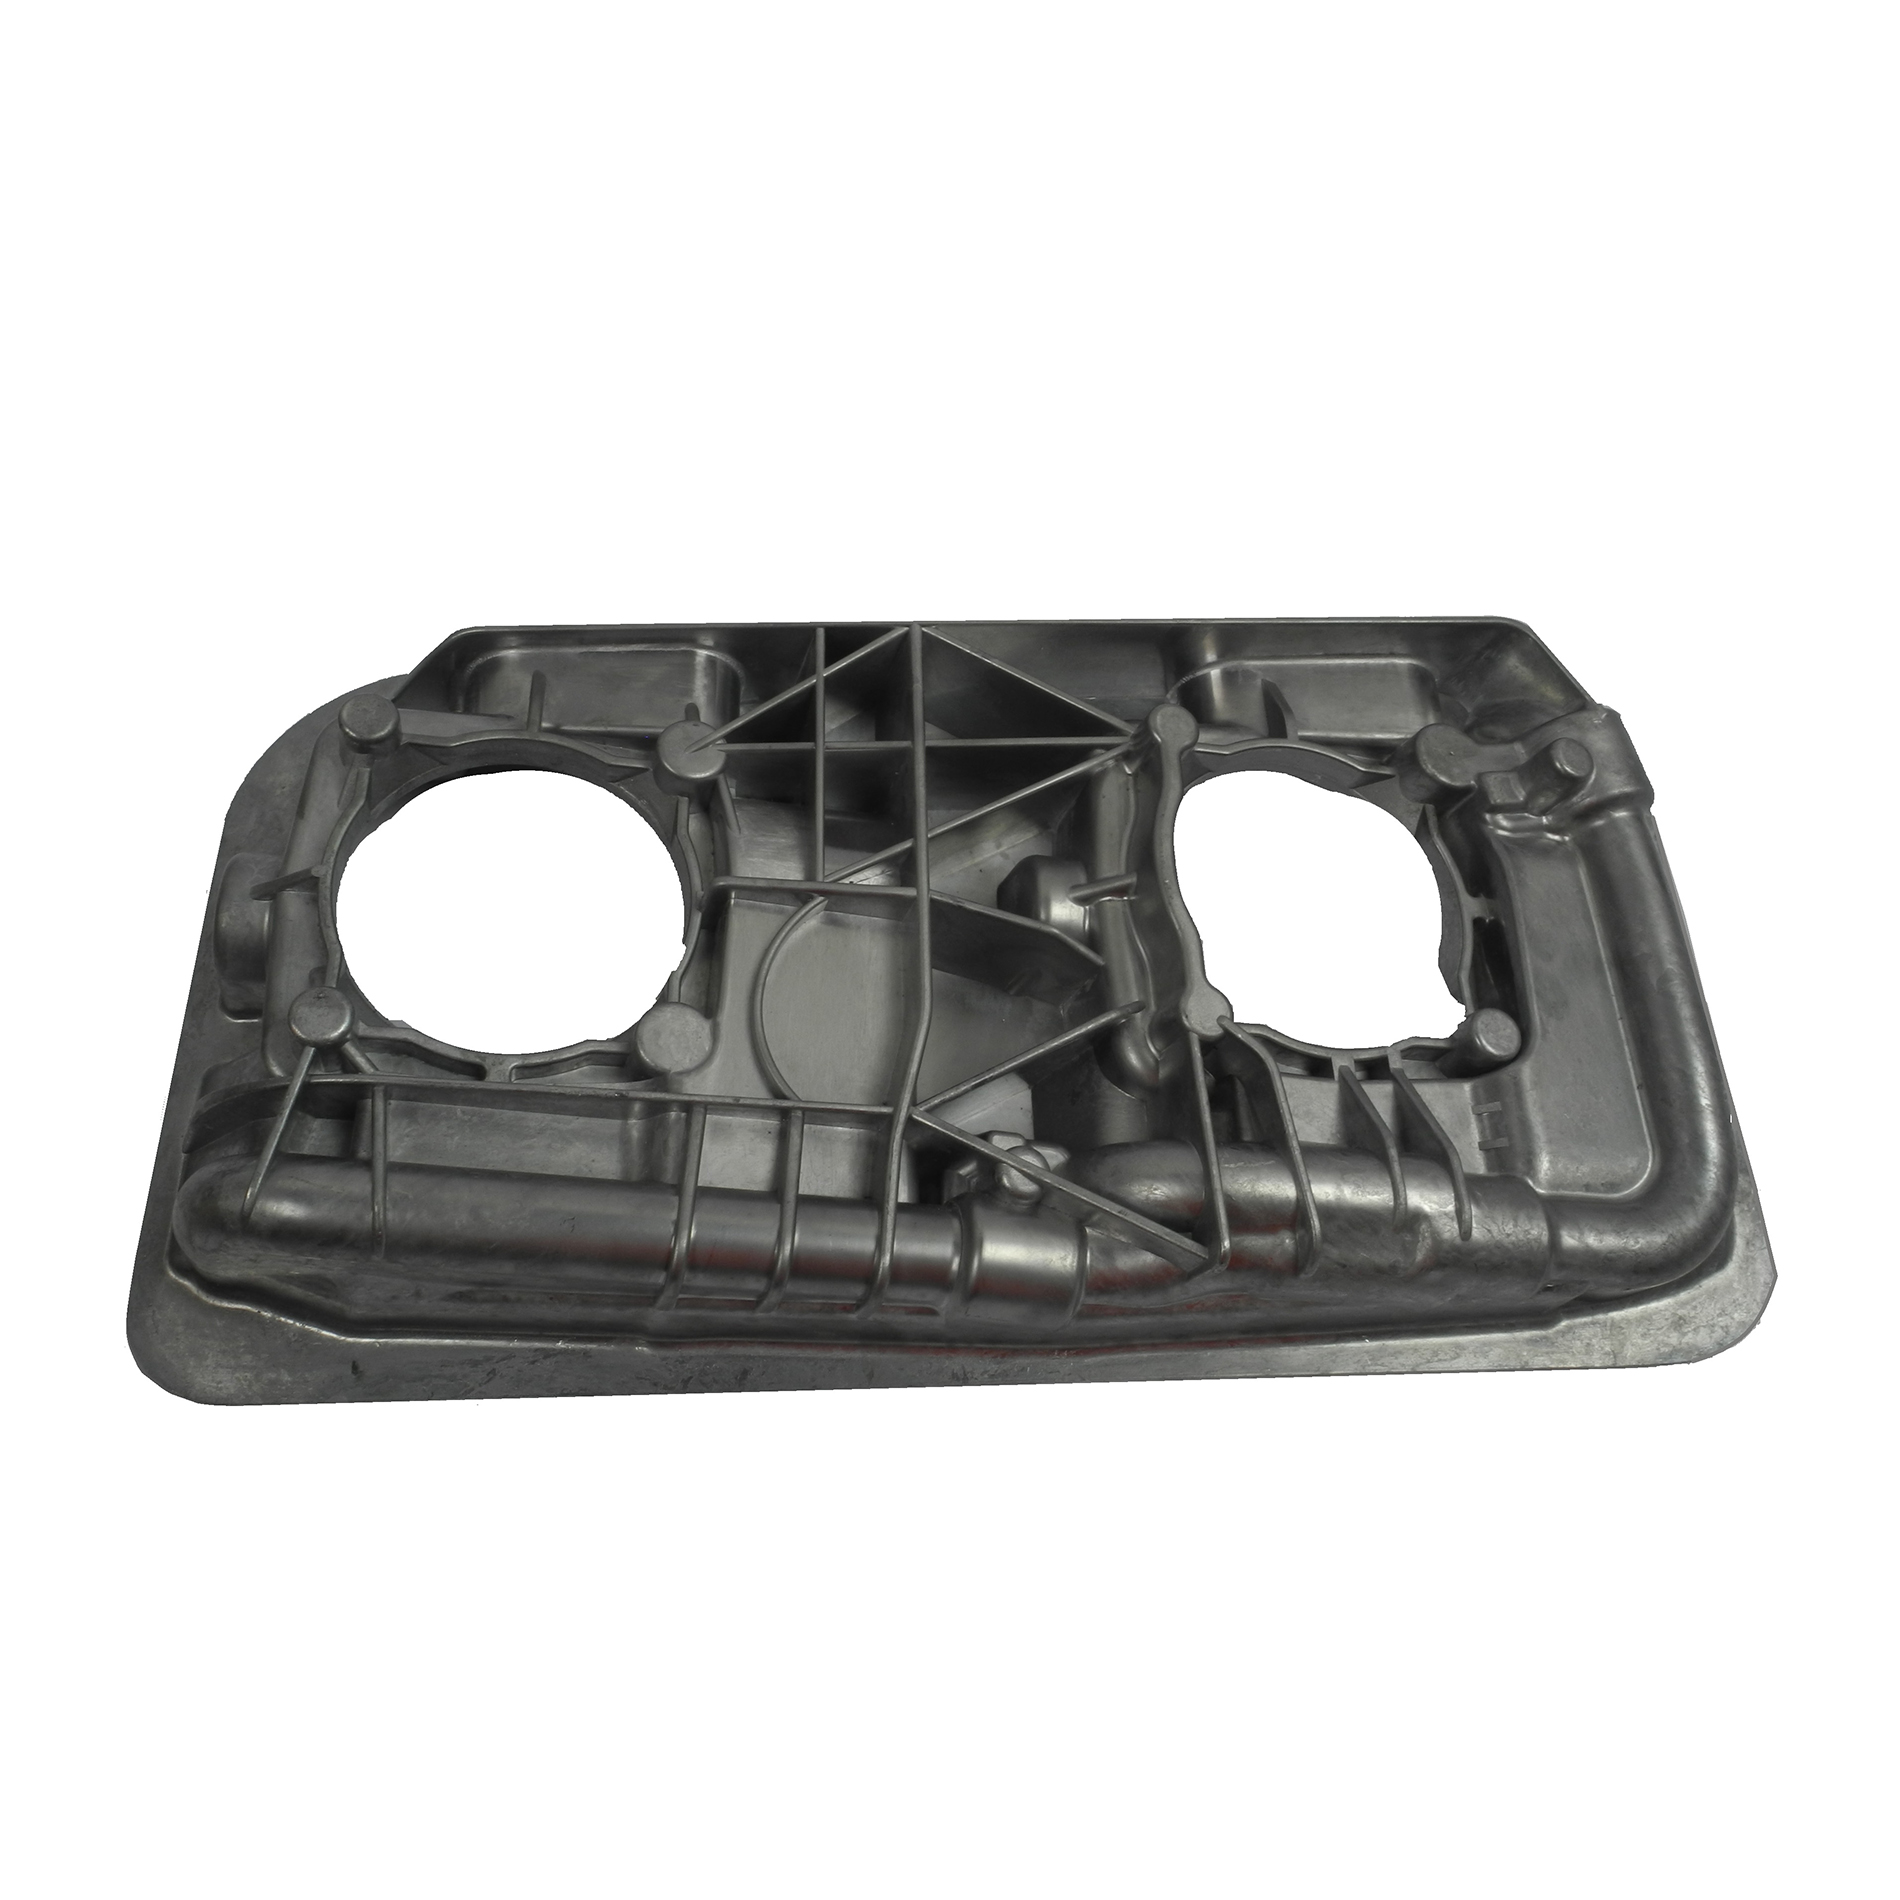 Benz Intake Manifold Center Plate Kit For 07-09 CLK63 08